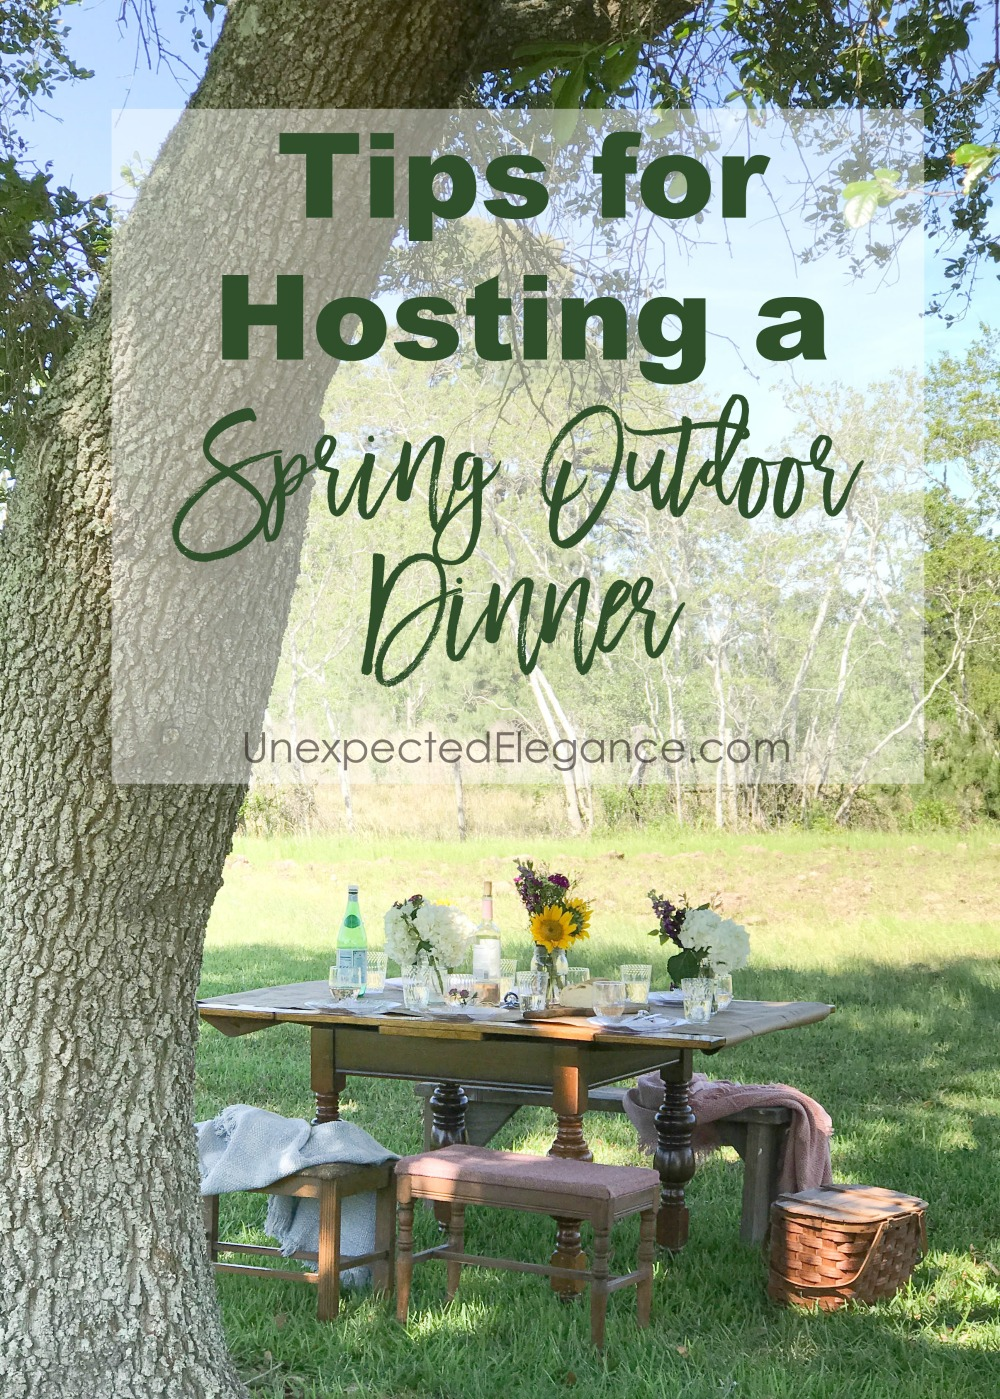 It's spring and time to get back outside! Invite some friends over and host a spring outdoor dinner in the backyard with these great tips!